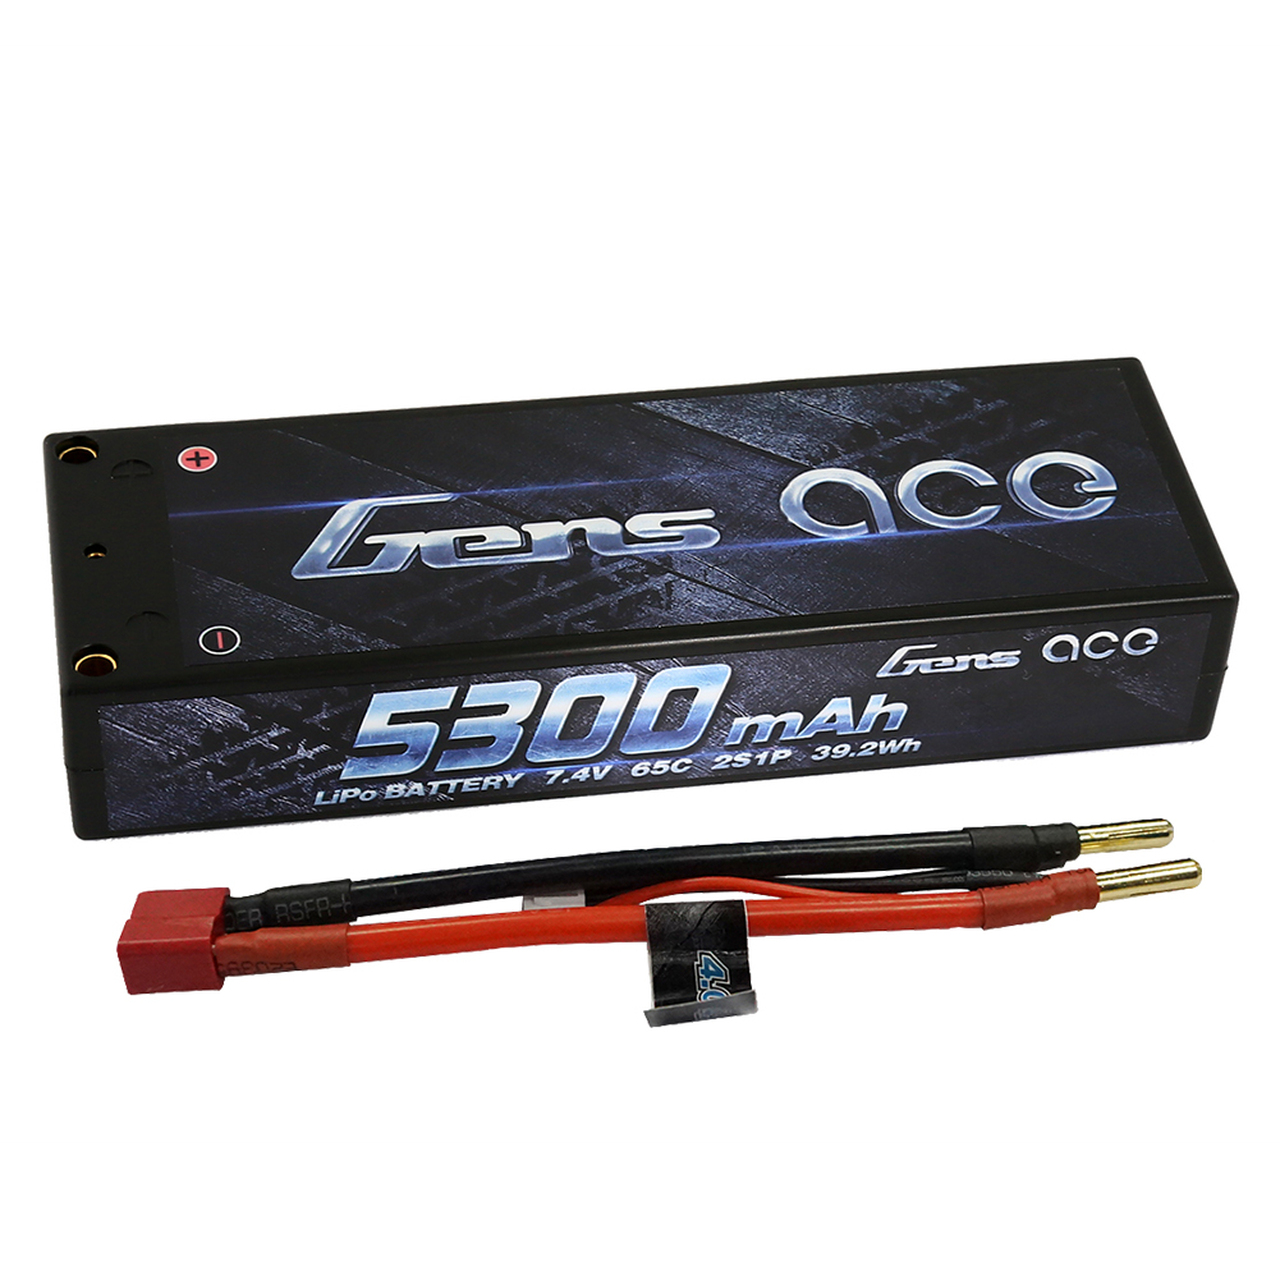 Gens ace 5300mAh 7.4V 65C 2S1P HardCase Lipo Battery Pack 10# with 4.0mm bullet to Deans plug